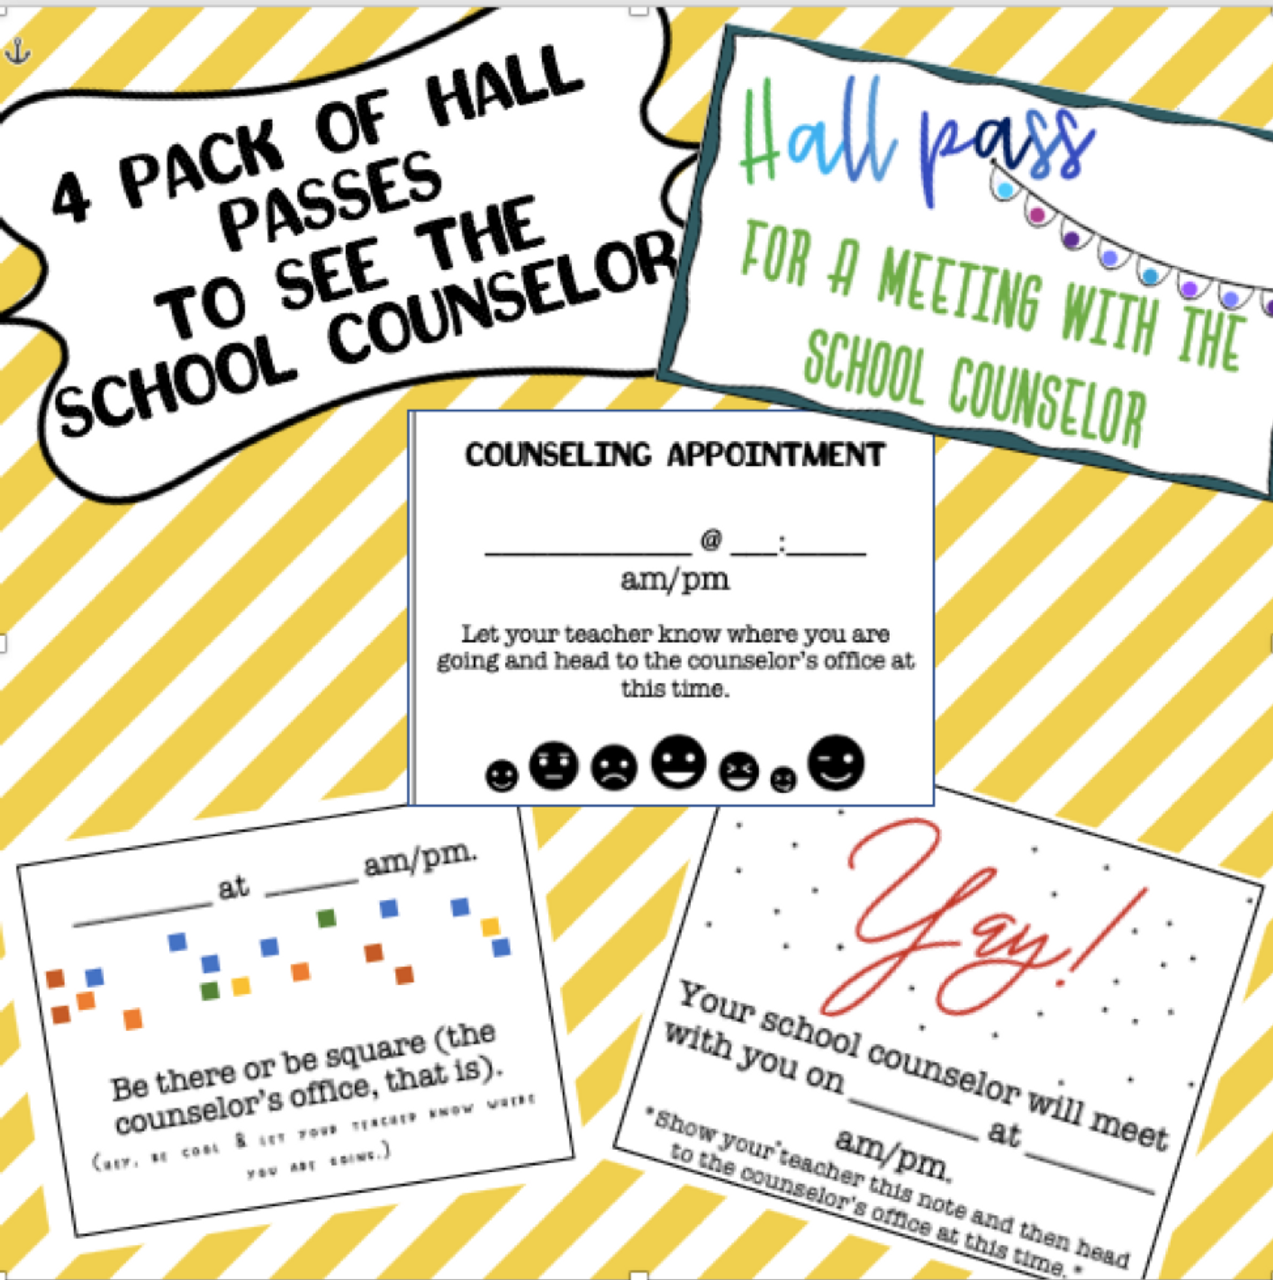 Request to see the Counselor Tickets (Hall Passes)